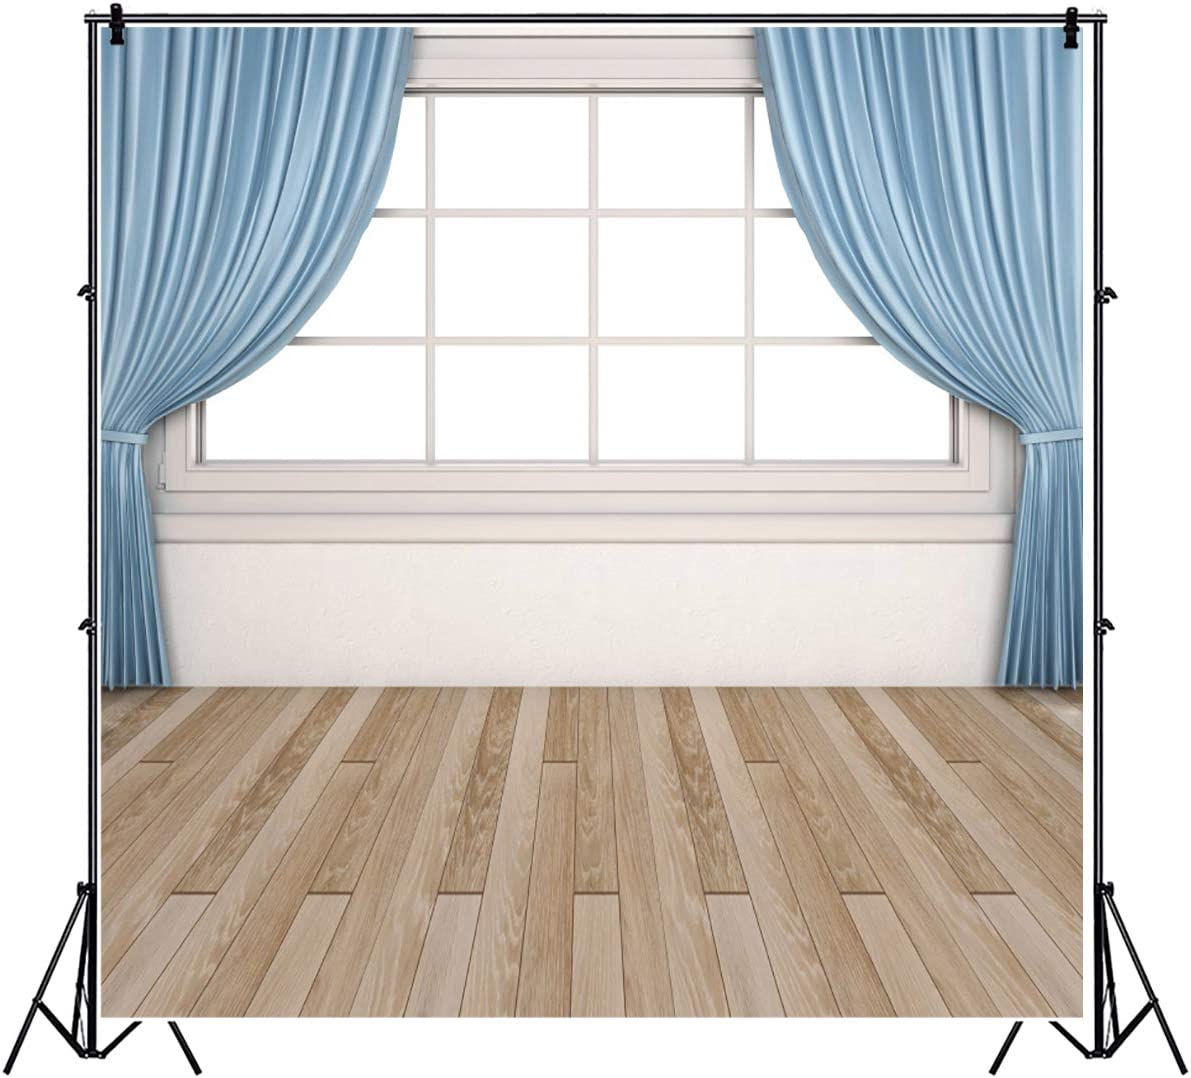 YEELE Empty Interior with Window Backdrop 9x9ft White Window with Blue Curtain Photography Background House Home Decoration Kids Adults Portrait Photobooth Studio Props Digital Wallpaper